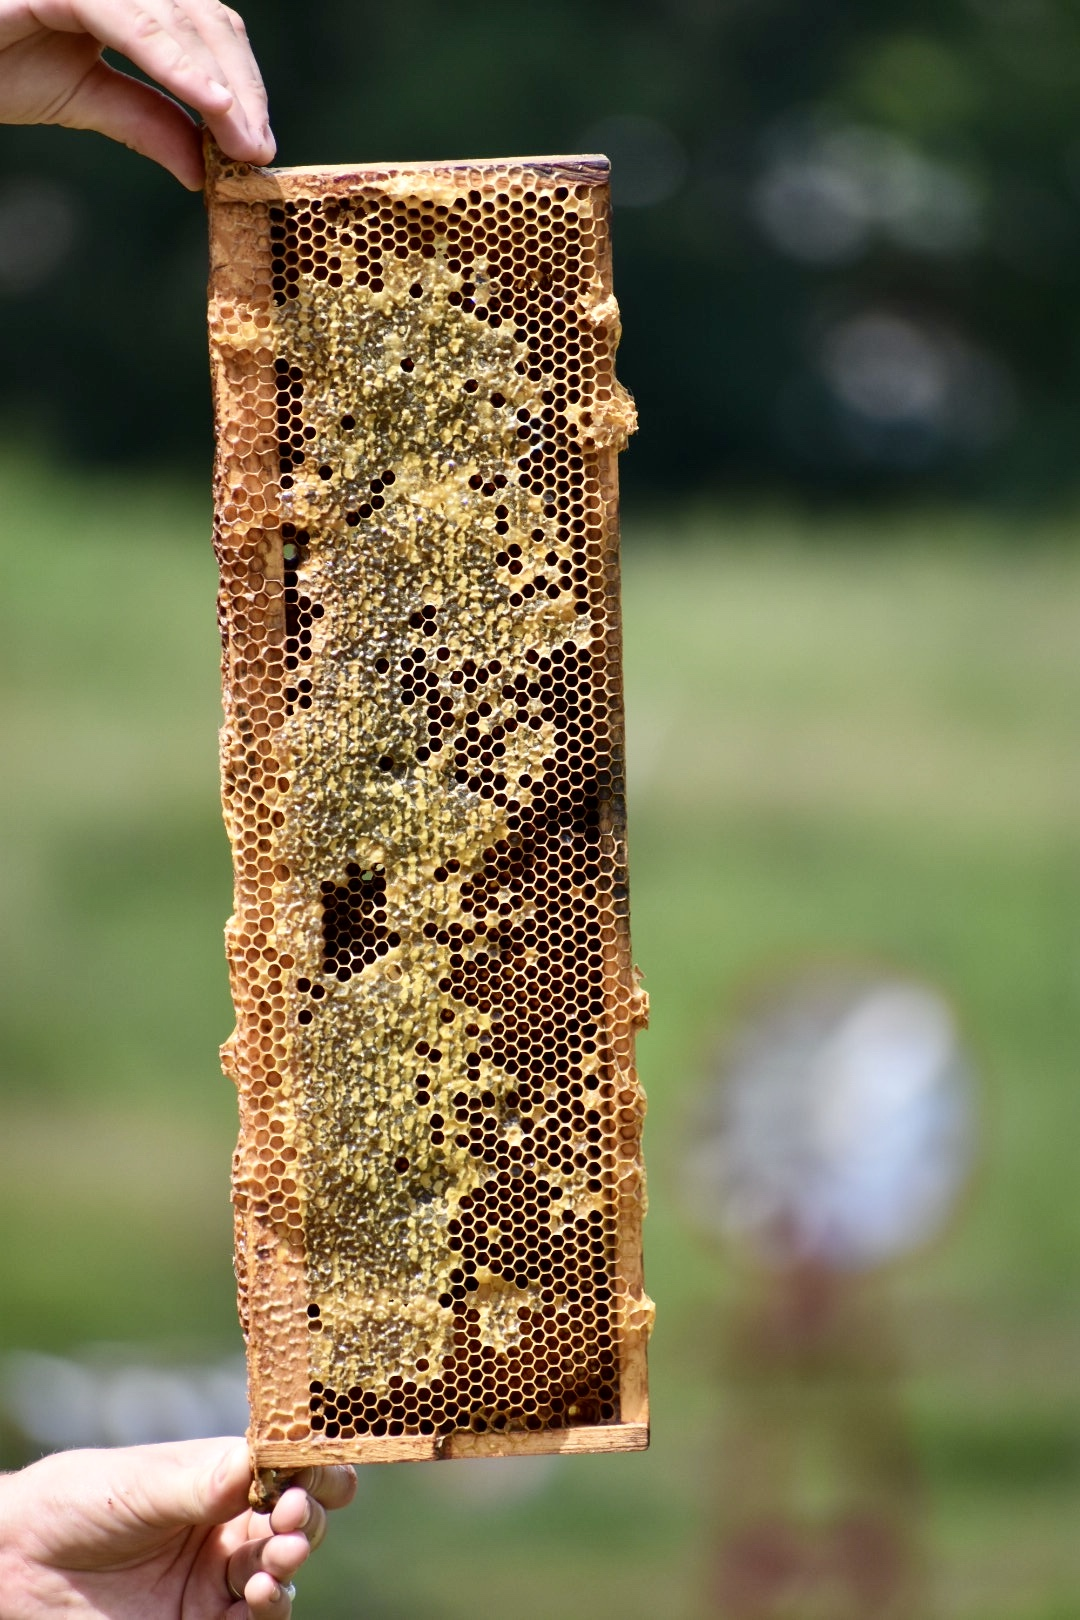 Frames Honey Host A Hive Gaiser Bee Co.